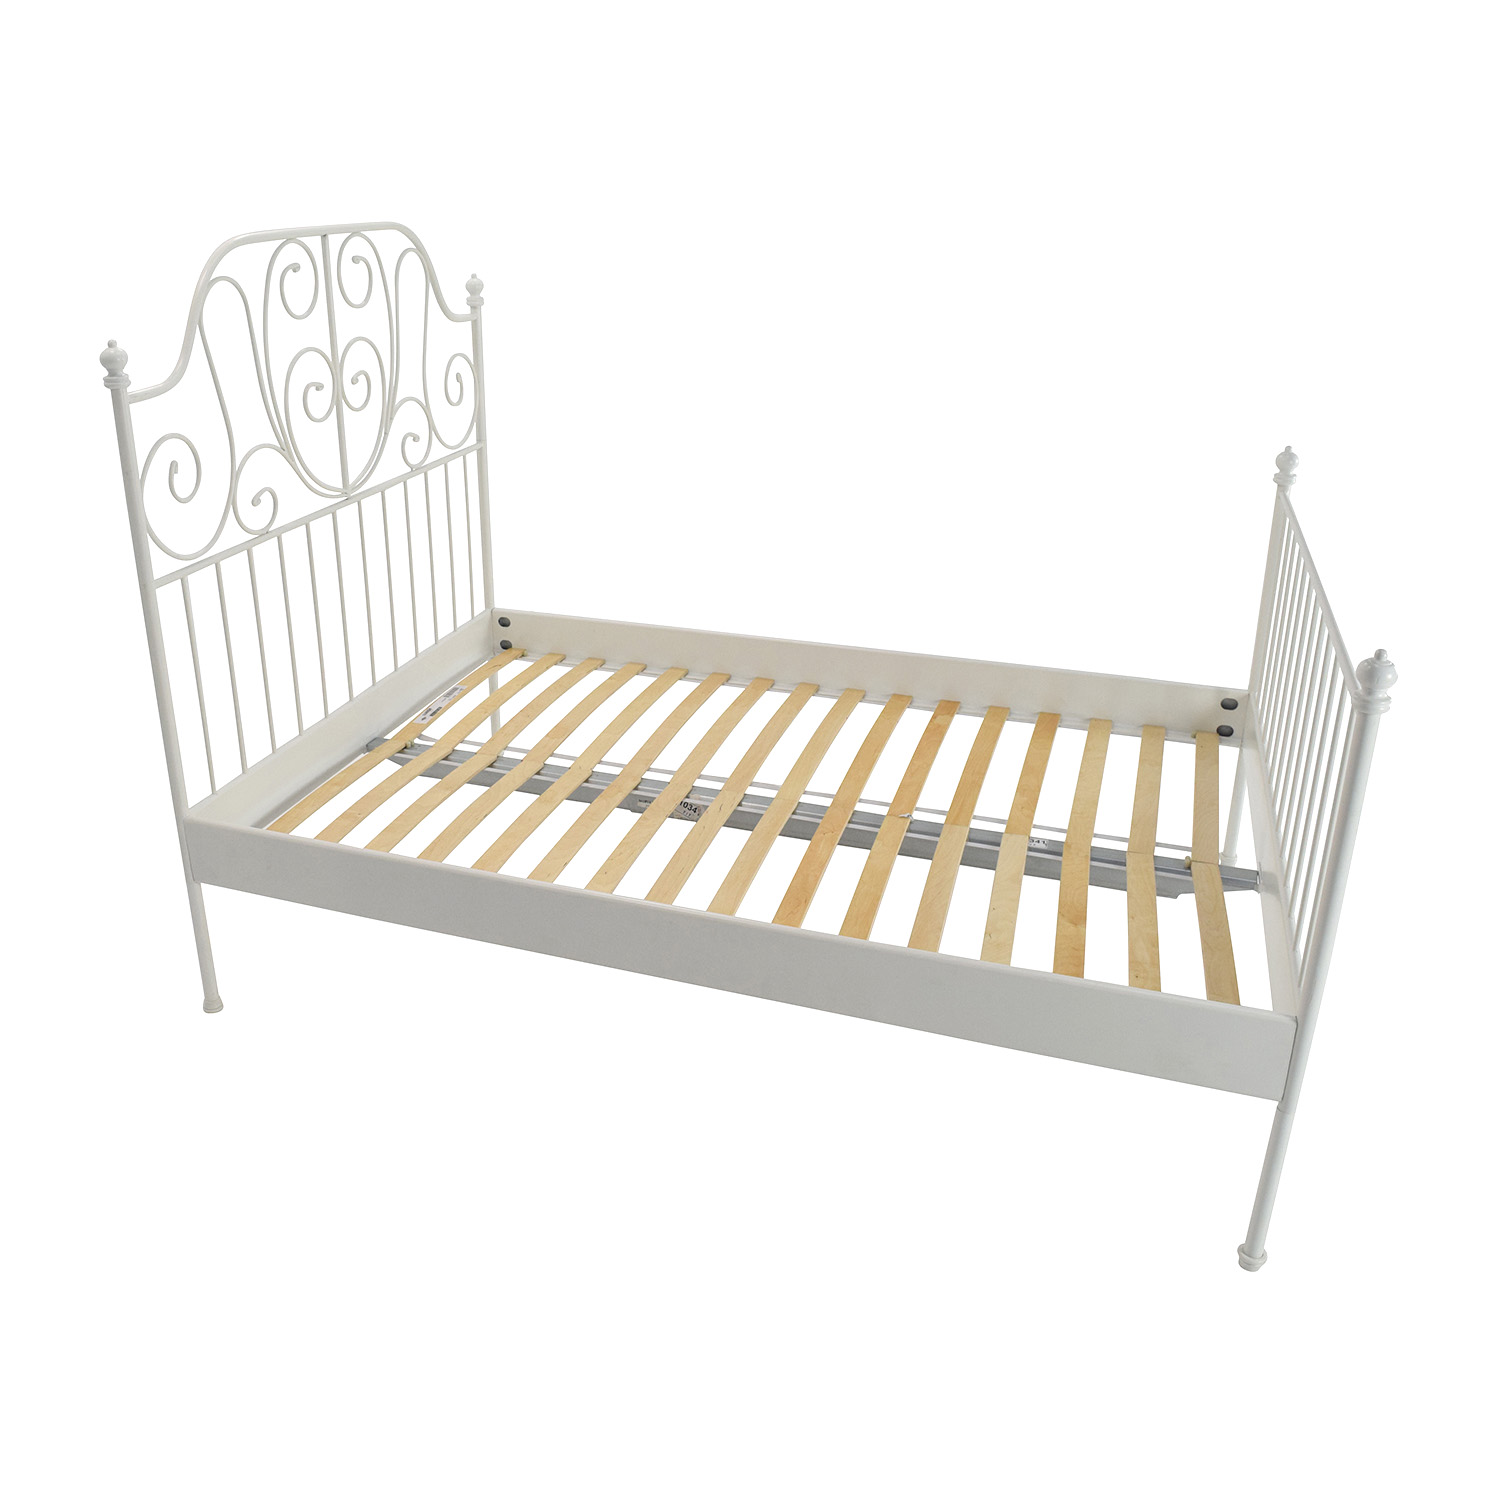 Bed frames full size bed frame full size platform and for Full size bed frame